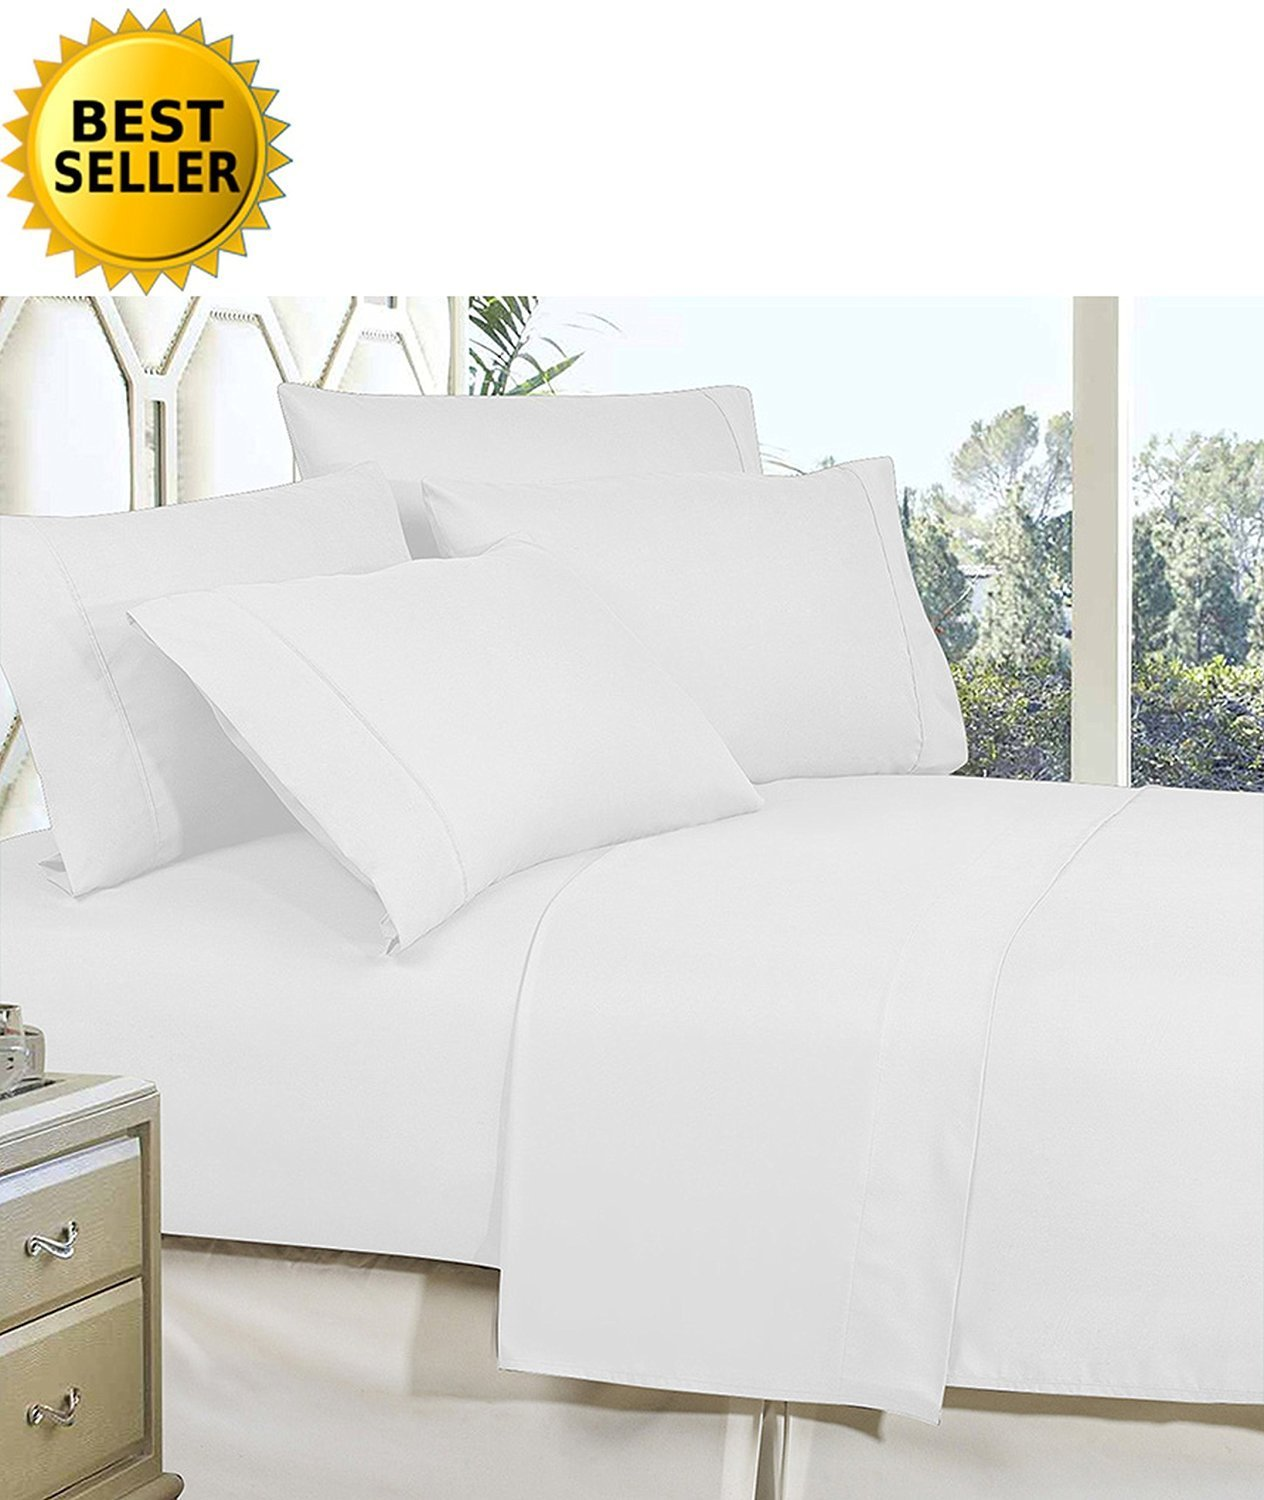 High Quality Best, Softest, Coziest Bed Sheets Ever! 1800 Thread Count Egyptian Quality  Wrinkle